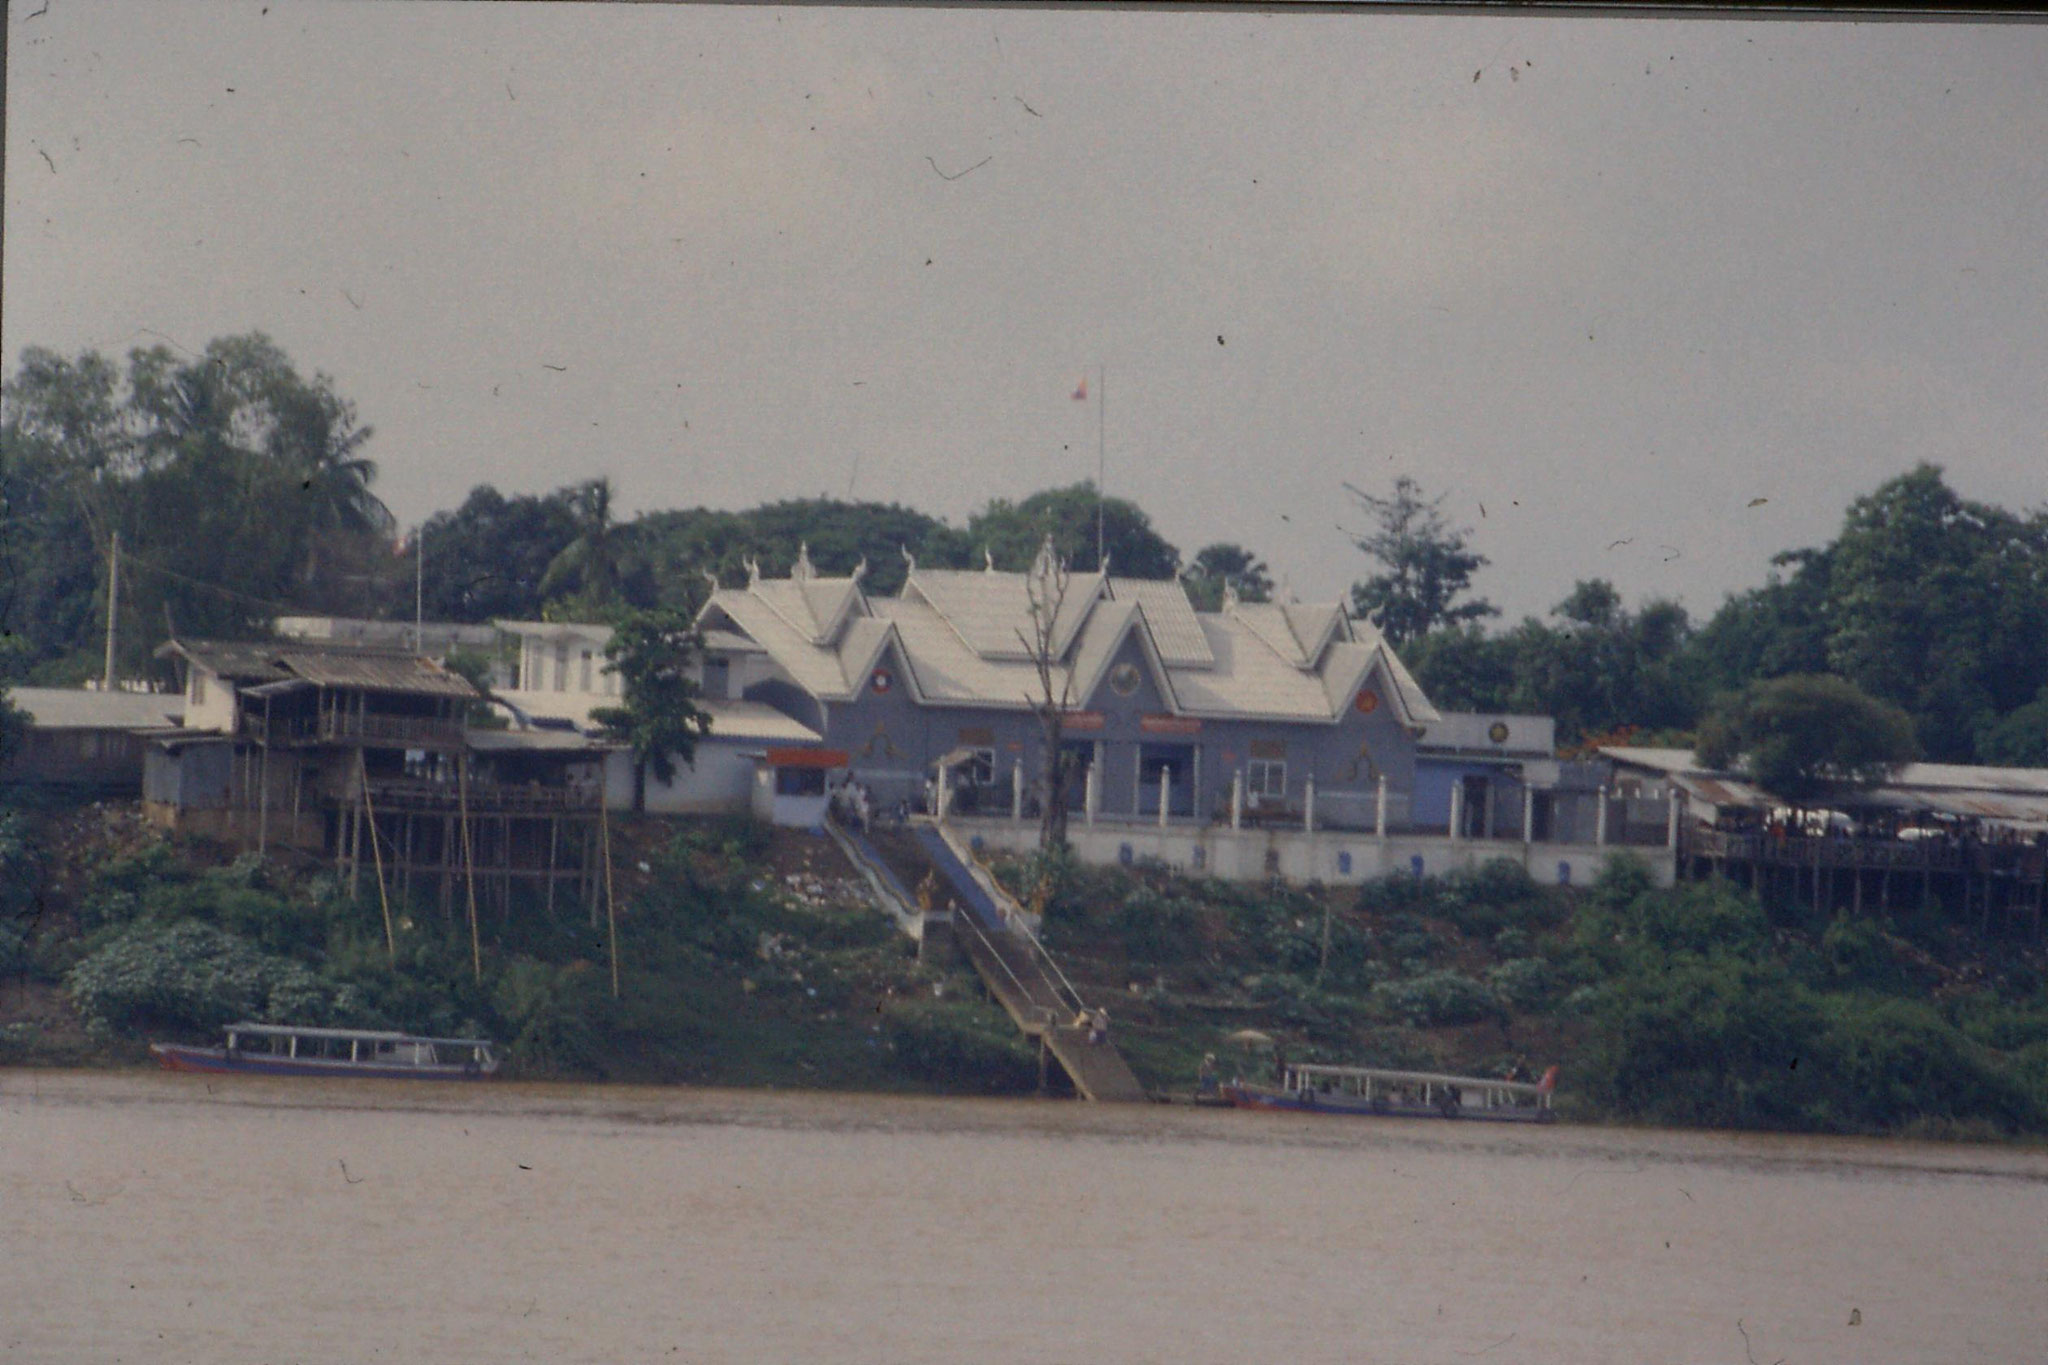 29/5/1990: 15: Laotian border point across Mekong